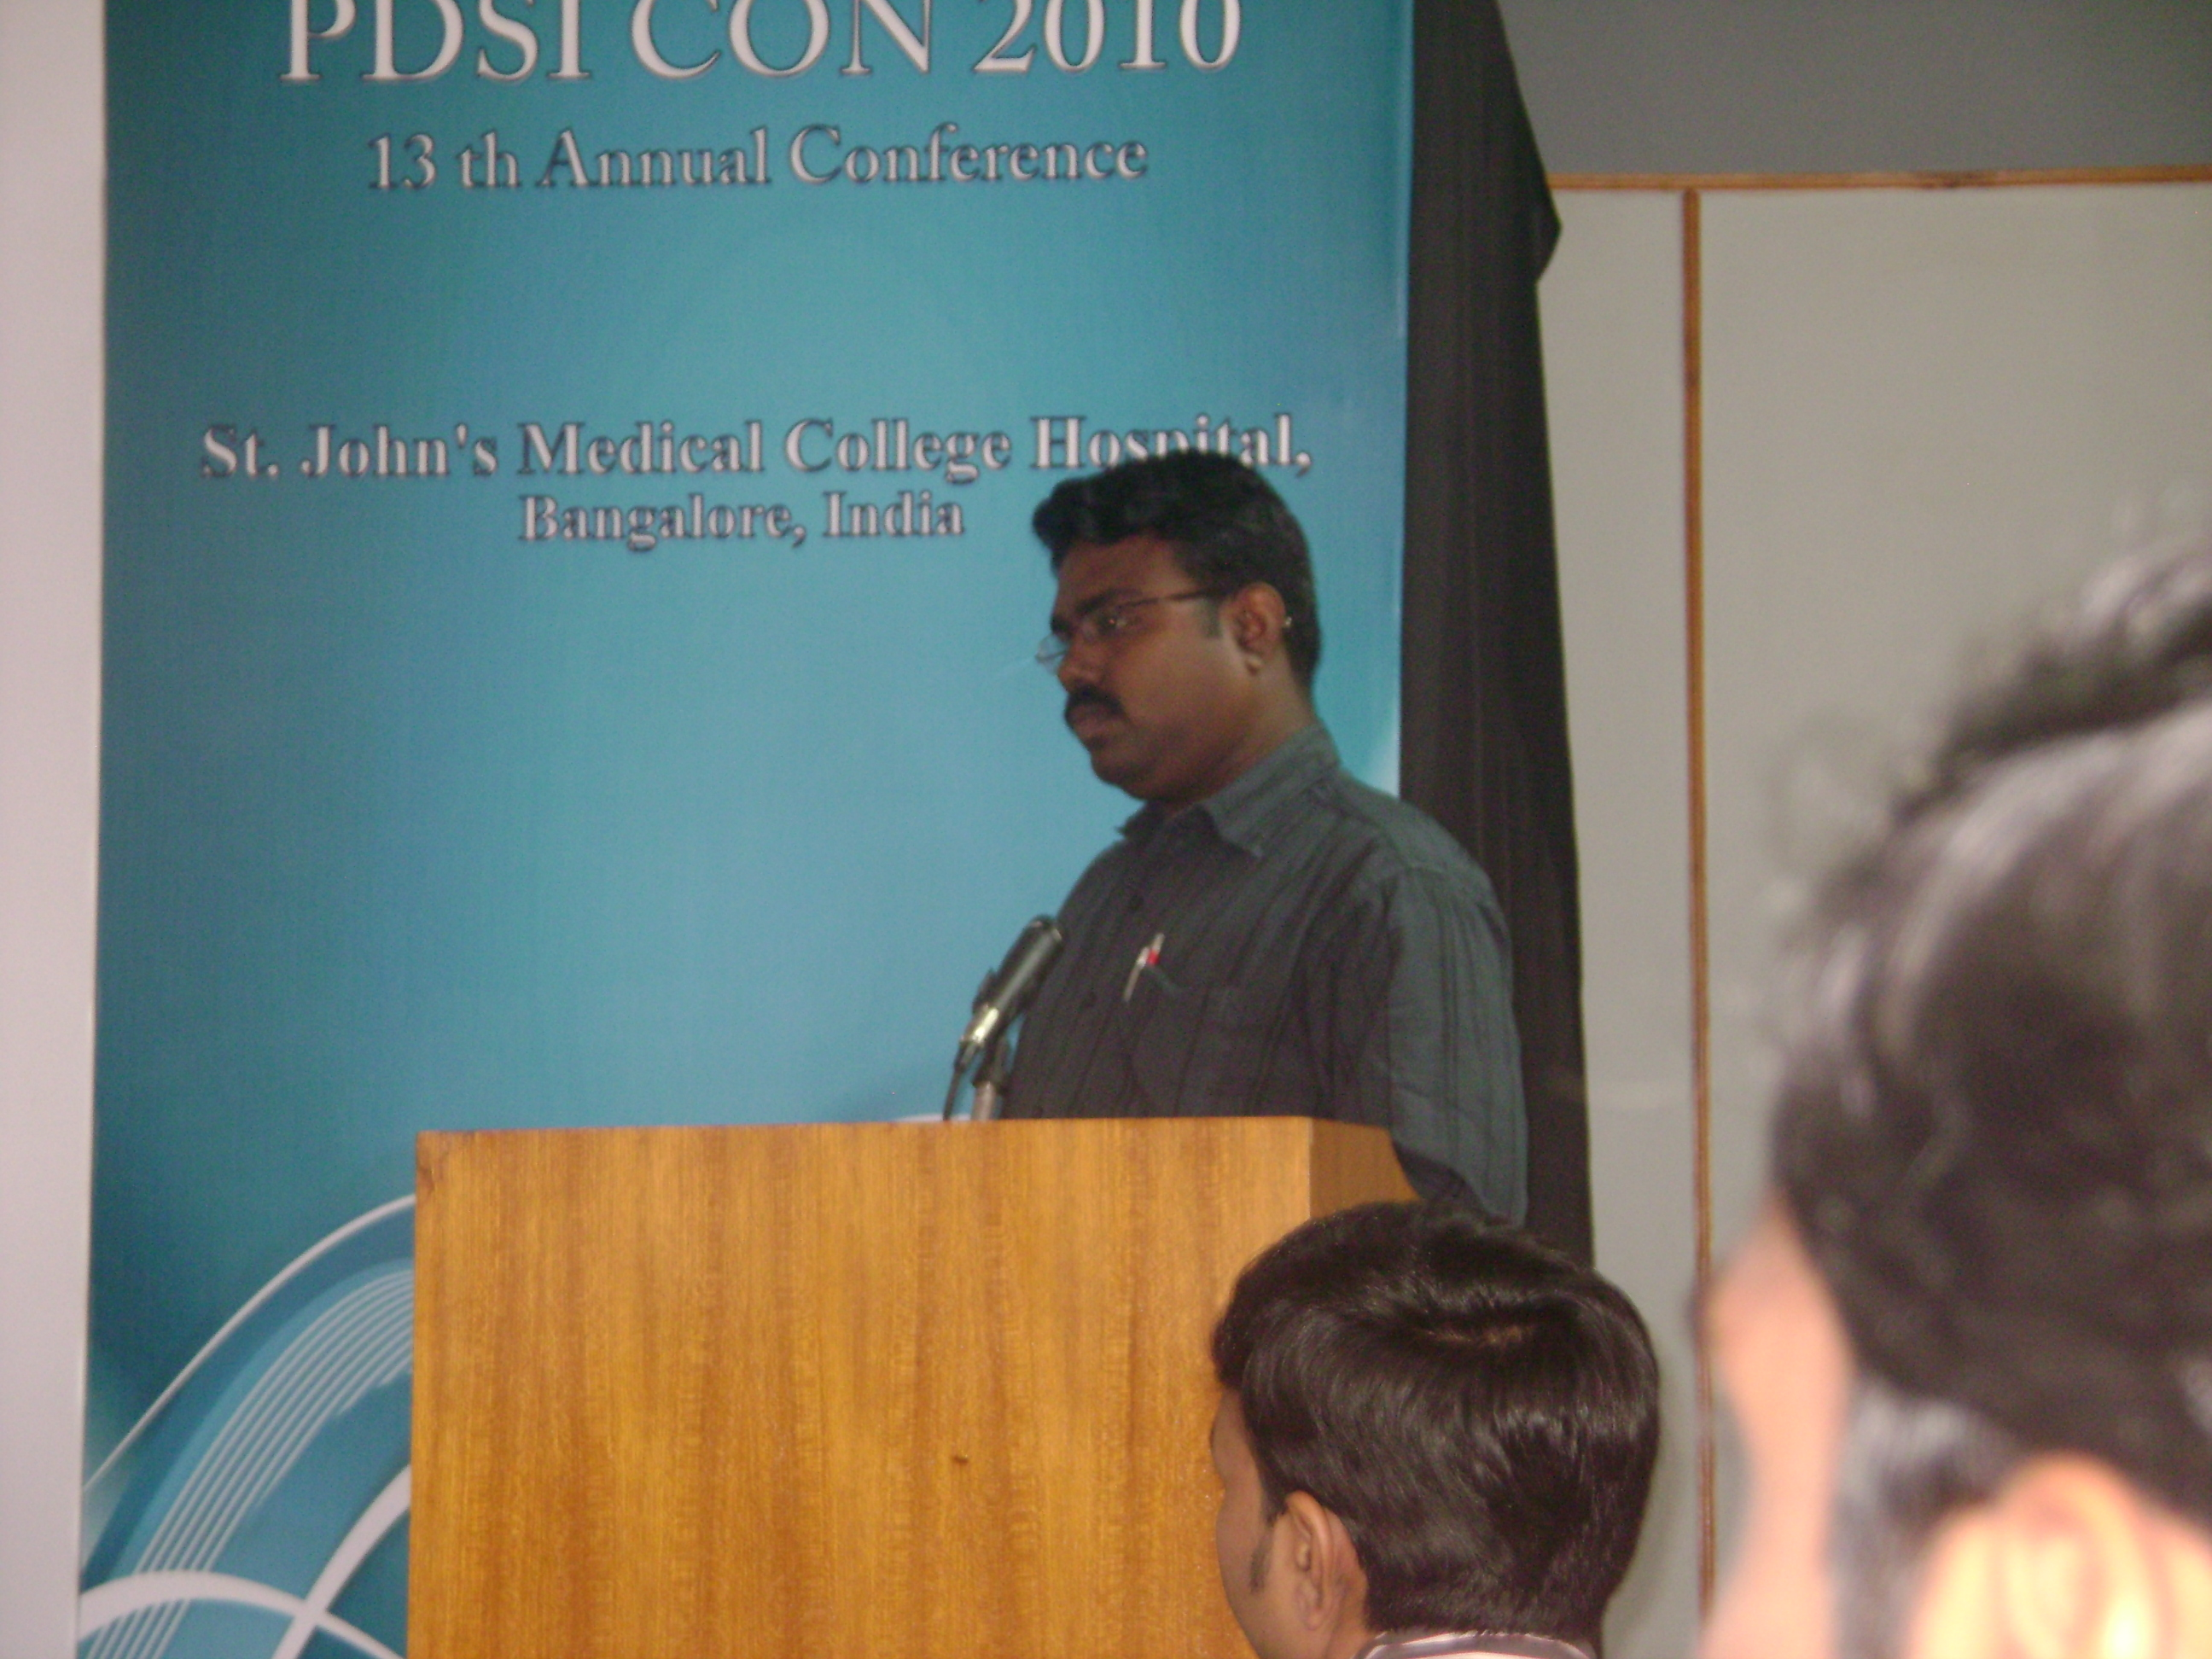 Paper presentation in Bangalore